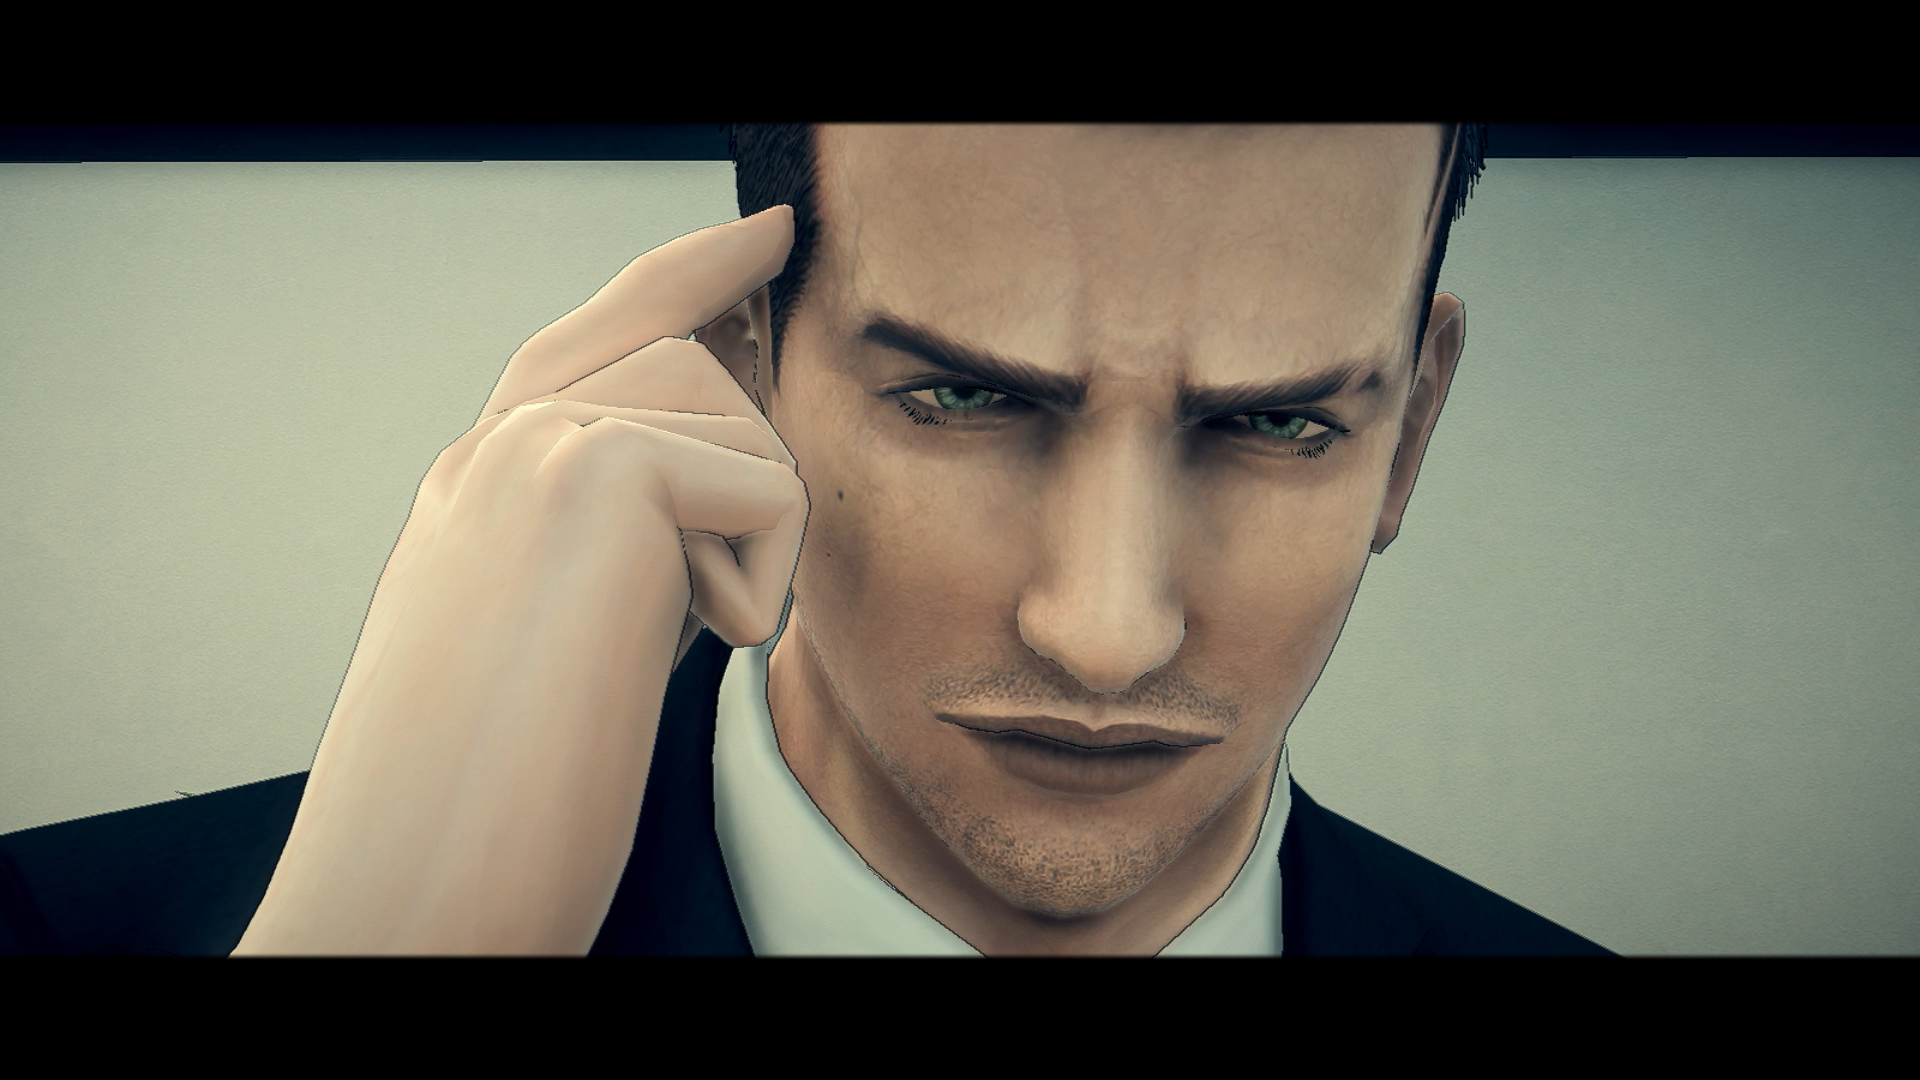 Deadly Premonition 2 is coming to Steam this year